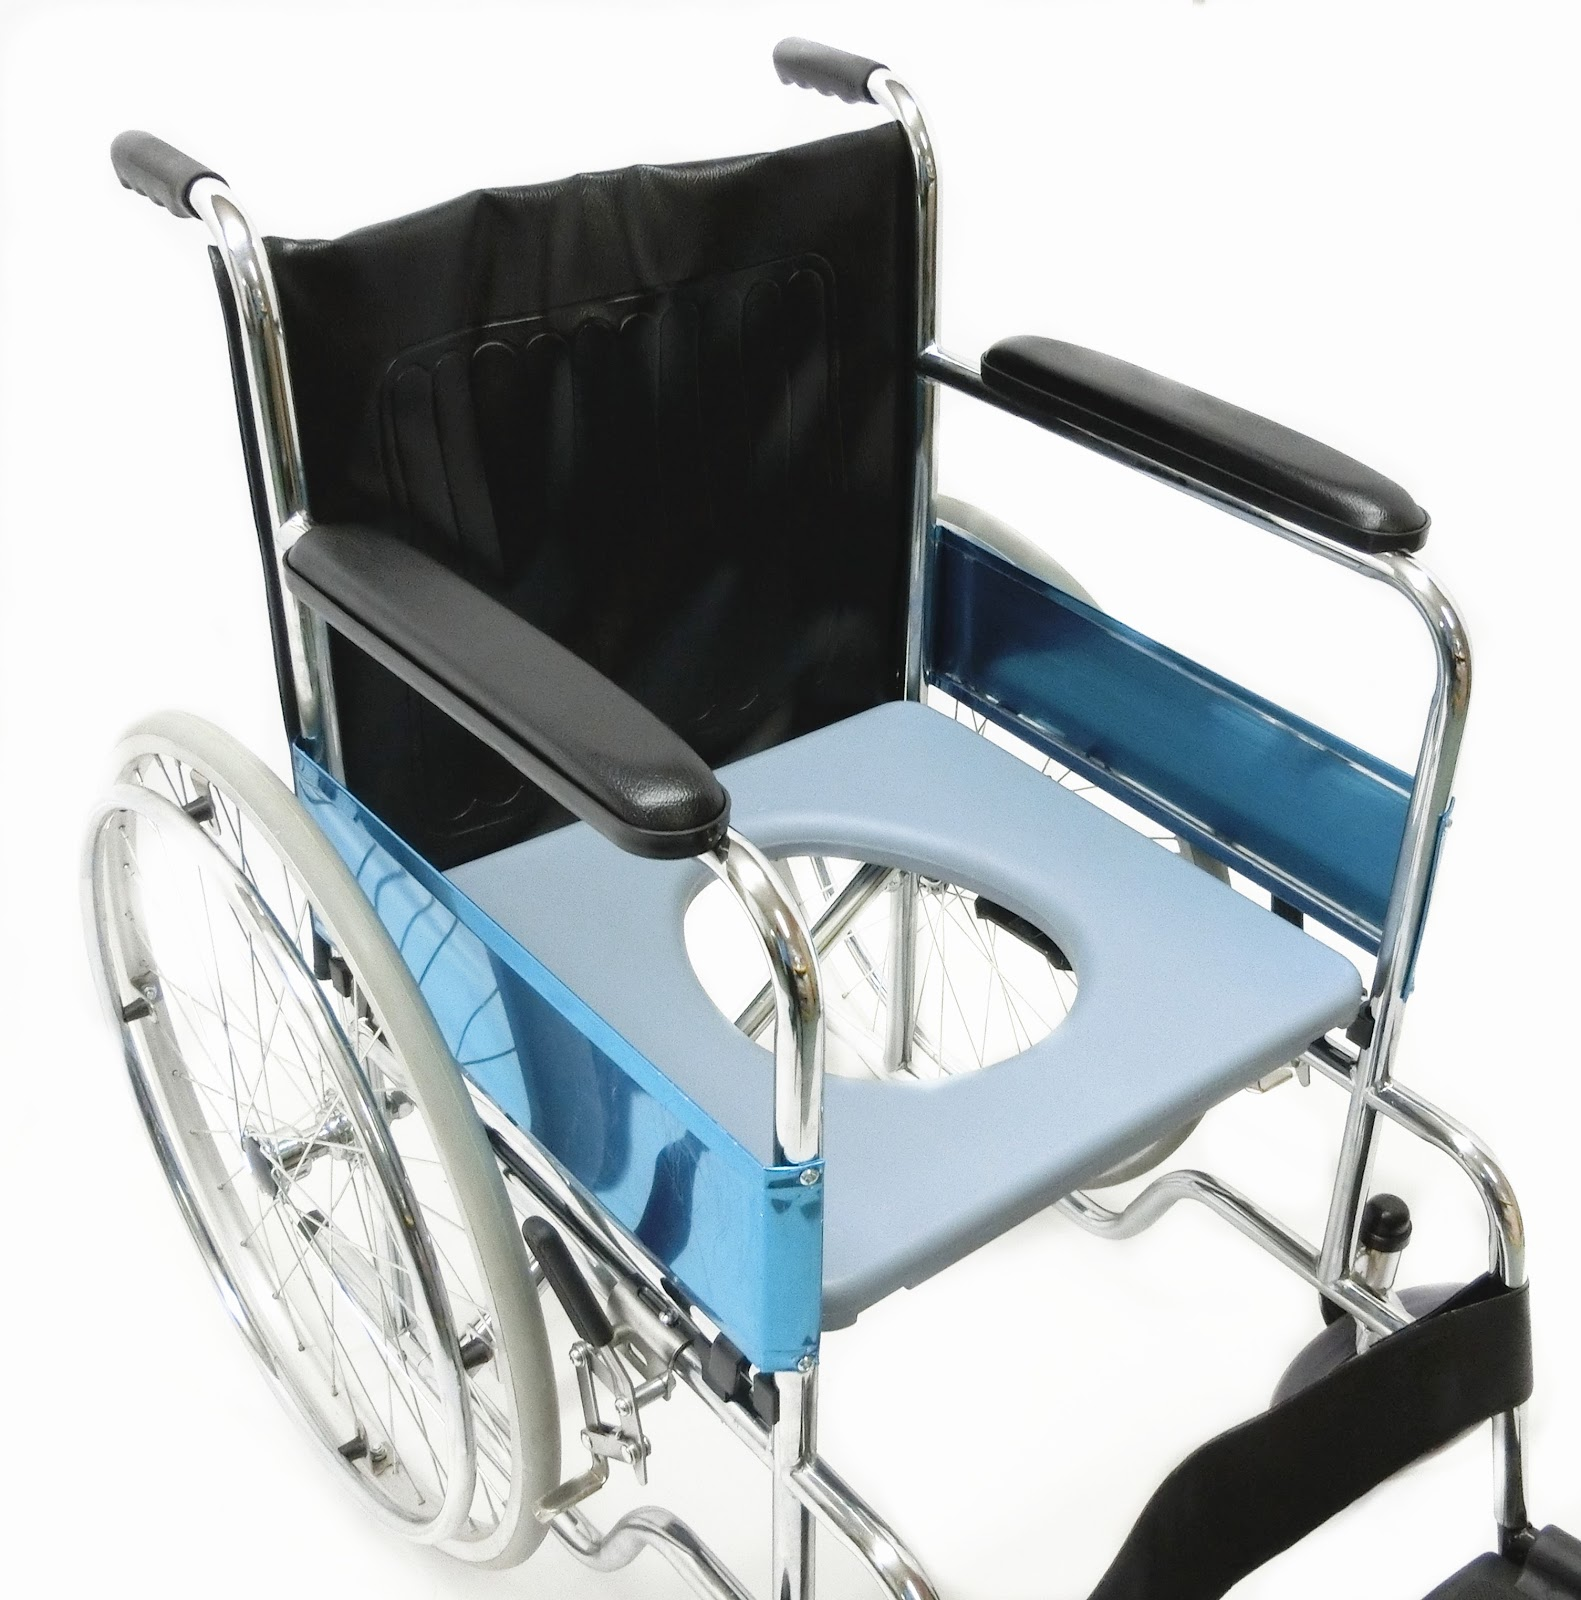 Shower Chair Malaysia 6 Dining Chairs And Table 2 In 1 Commode Wheelchair Ker End 7 27 2017 11 15 Am